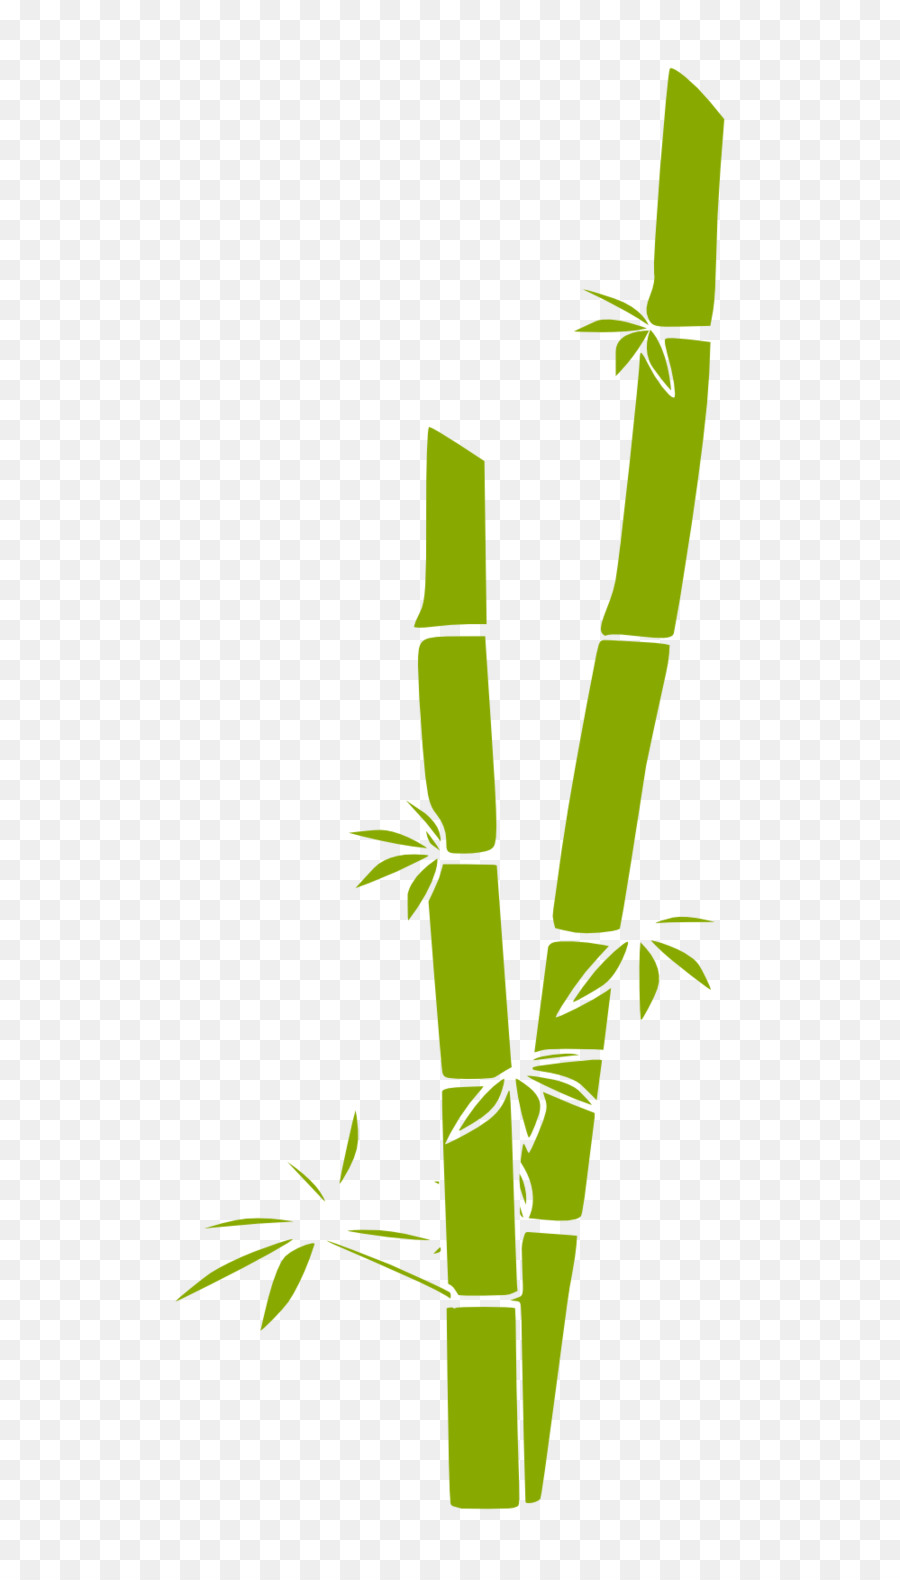 Bamboo clipart. Green grass background leaf